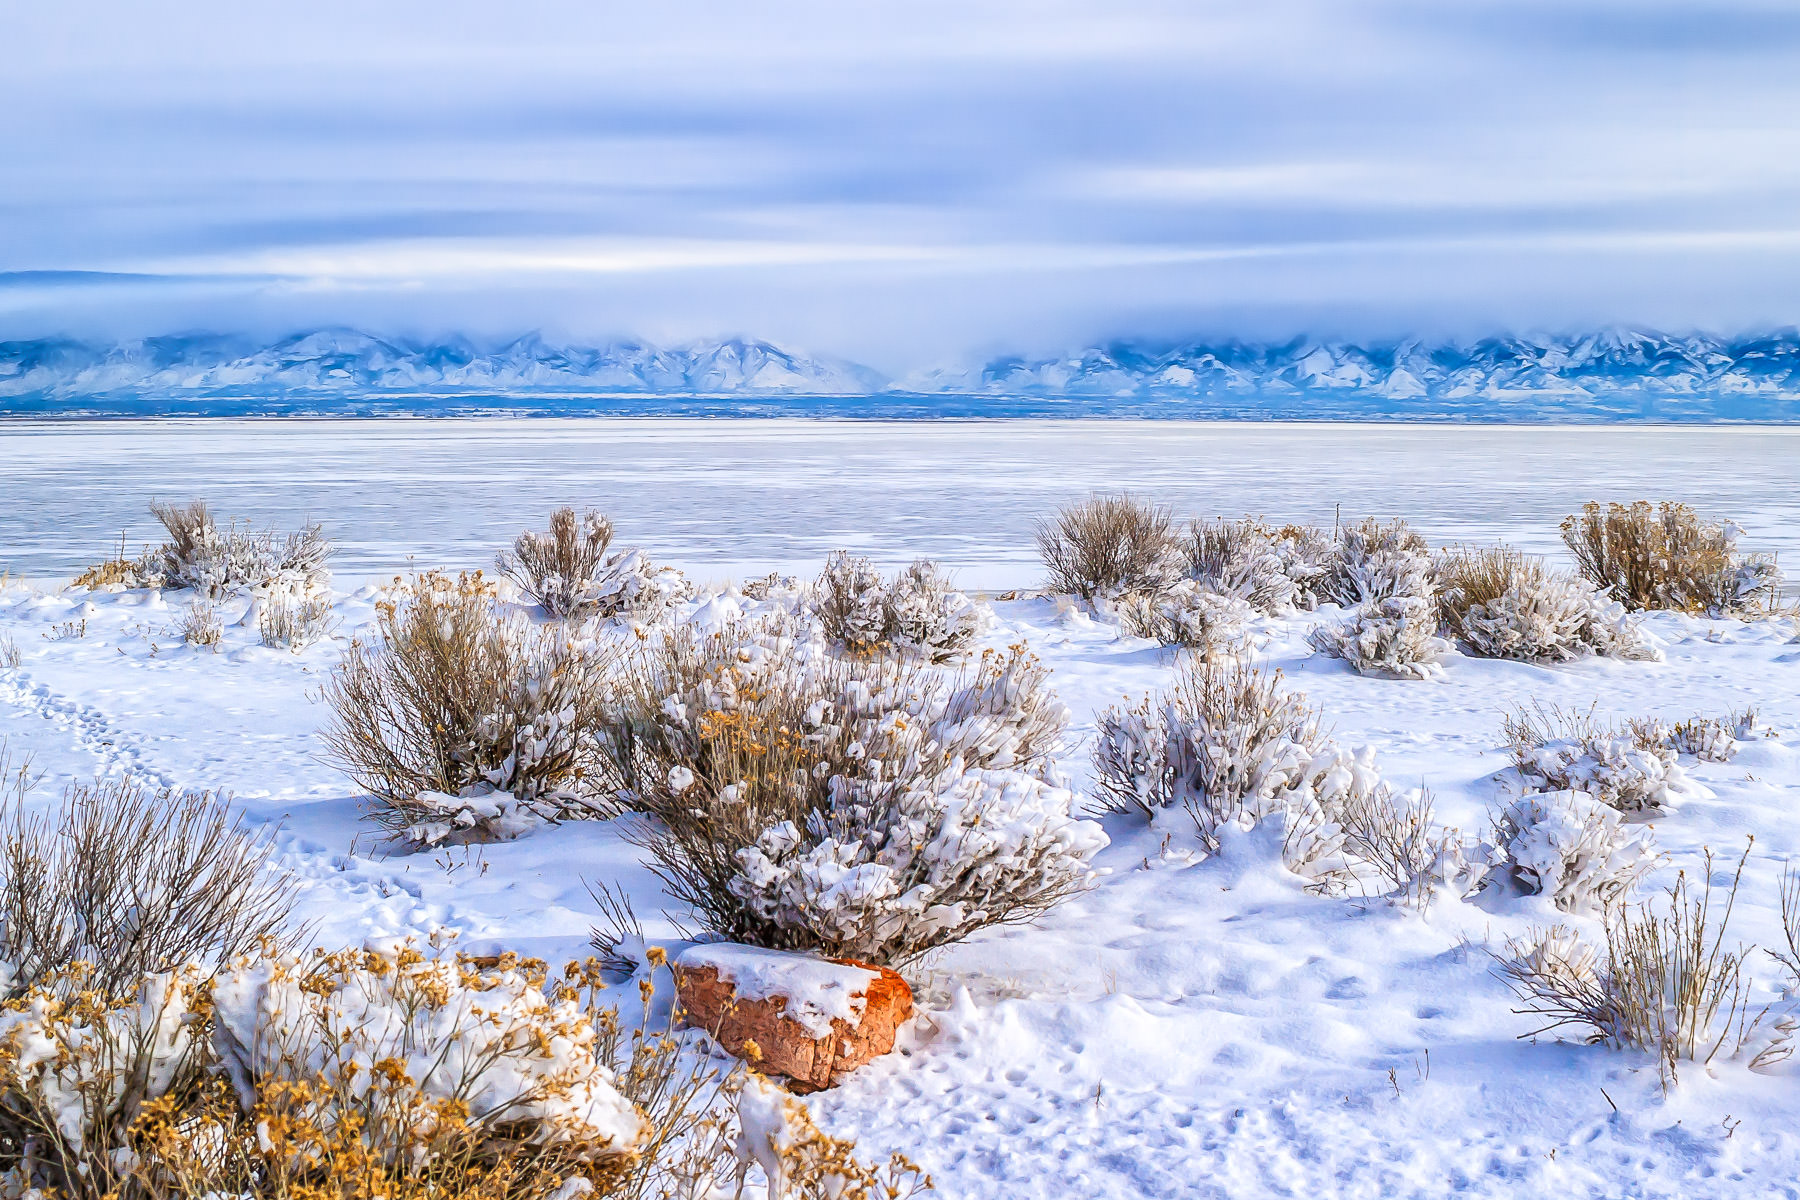 Frozen brush on the shore of the Great Salt Lake at Antelope Island State Park, Utah.